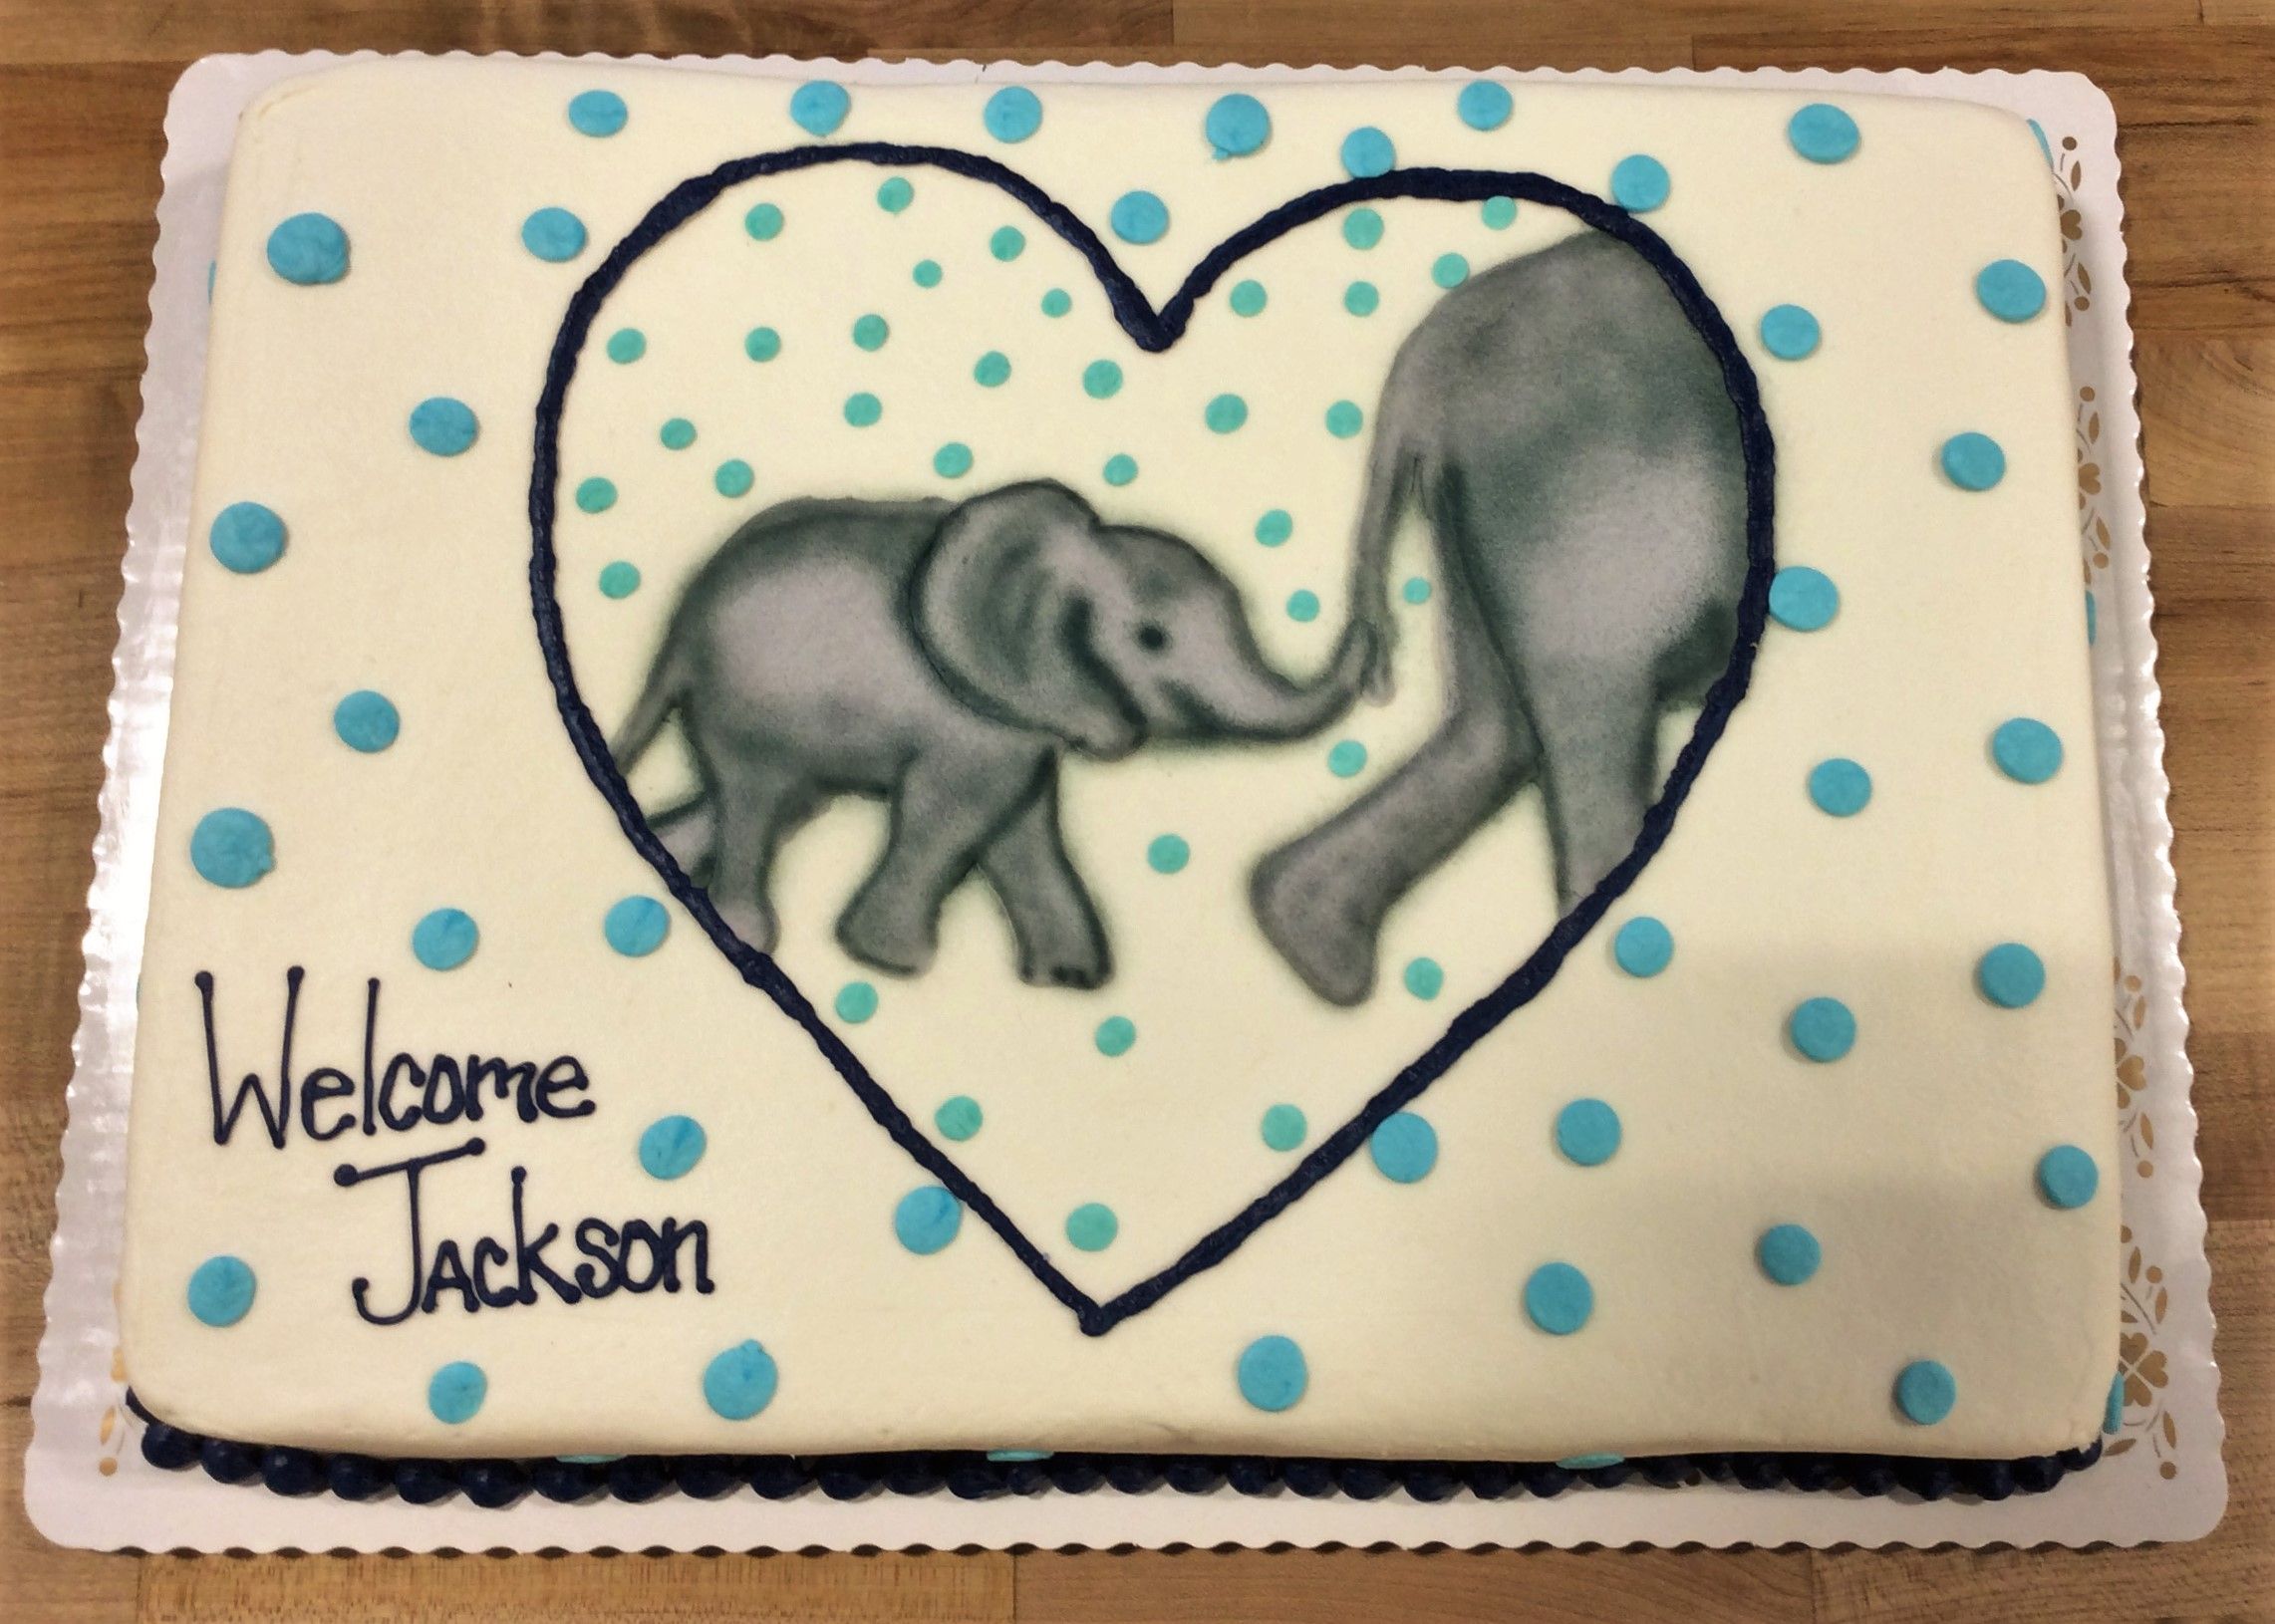 Sheet Cake with Airbrushed Elephants in Heart